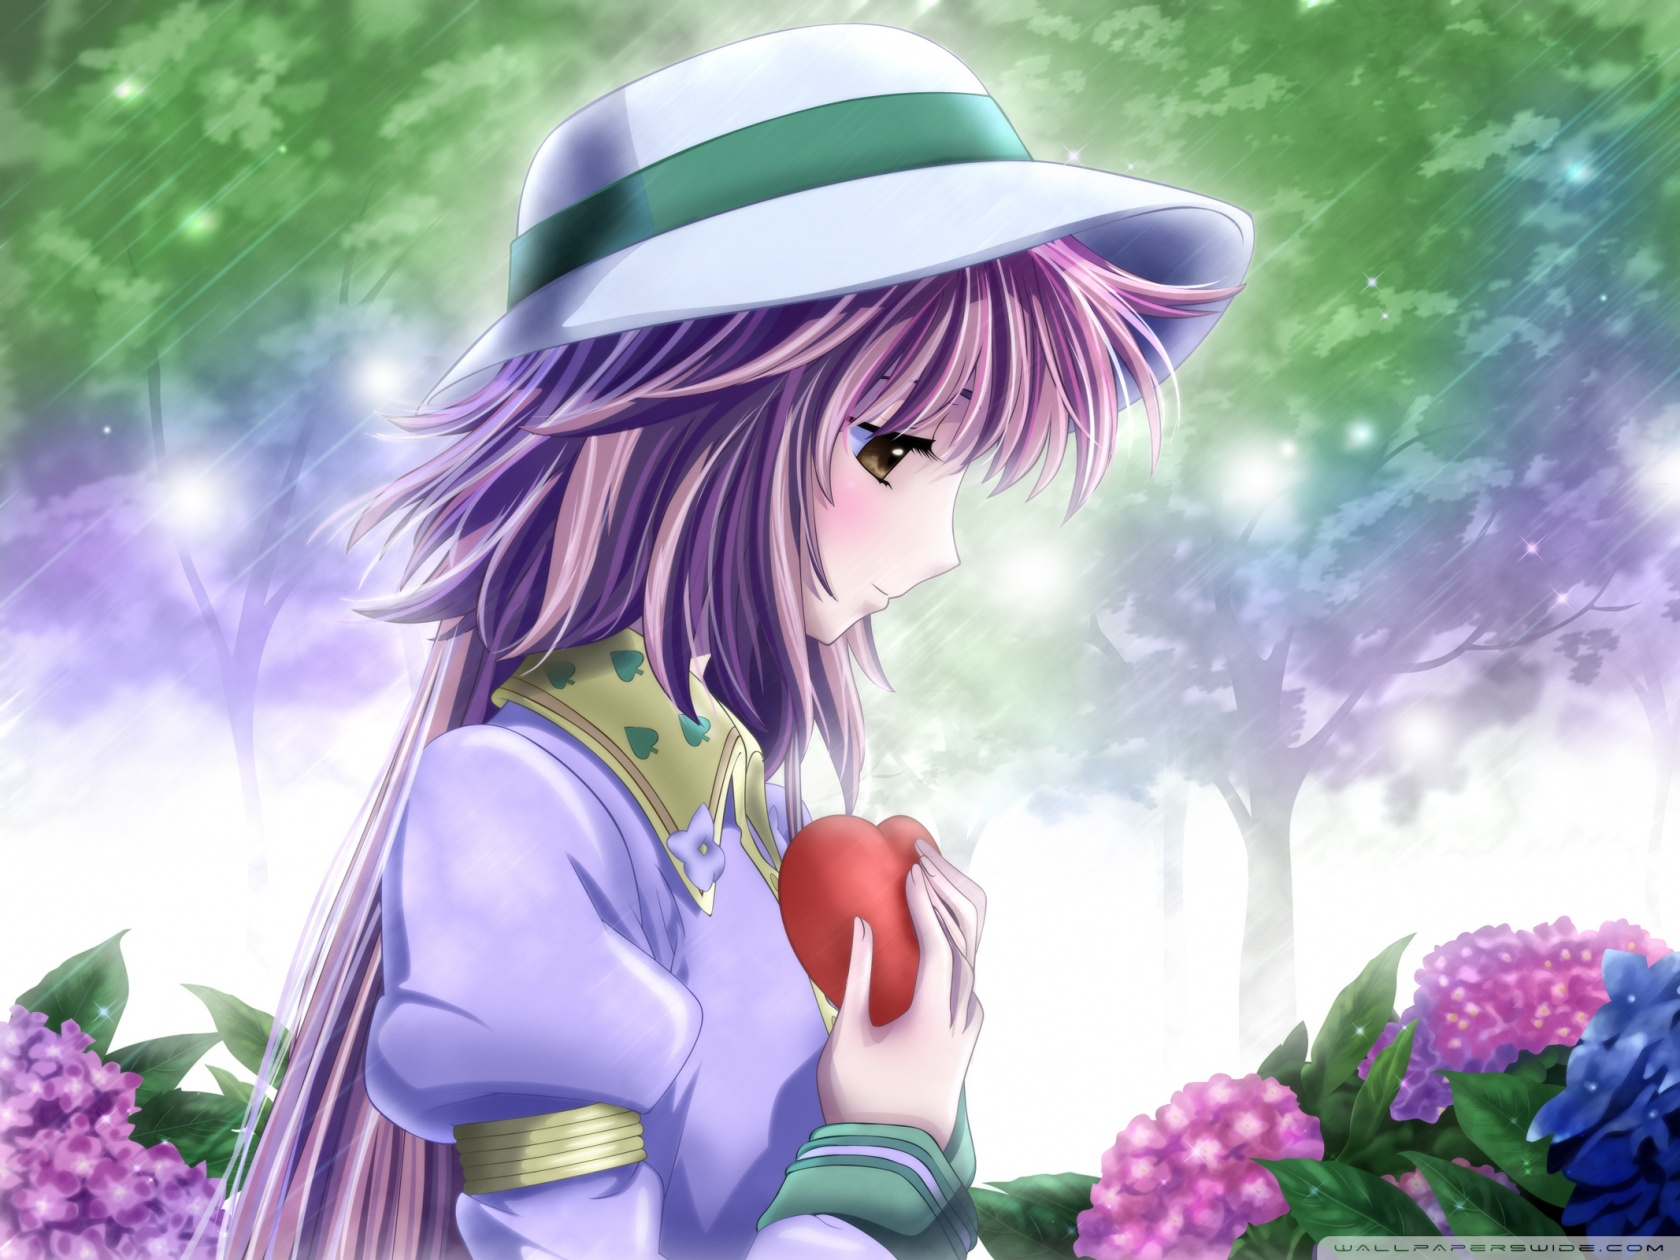 Anime Love Wallpapers: Anime Love Wallpaper